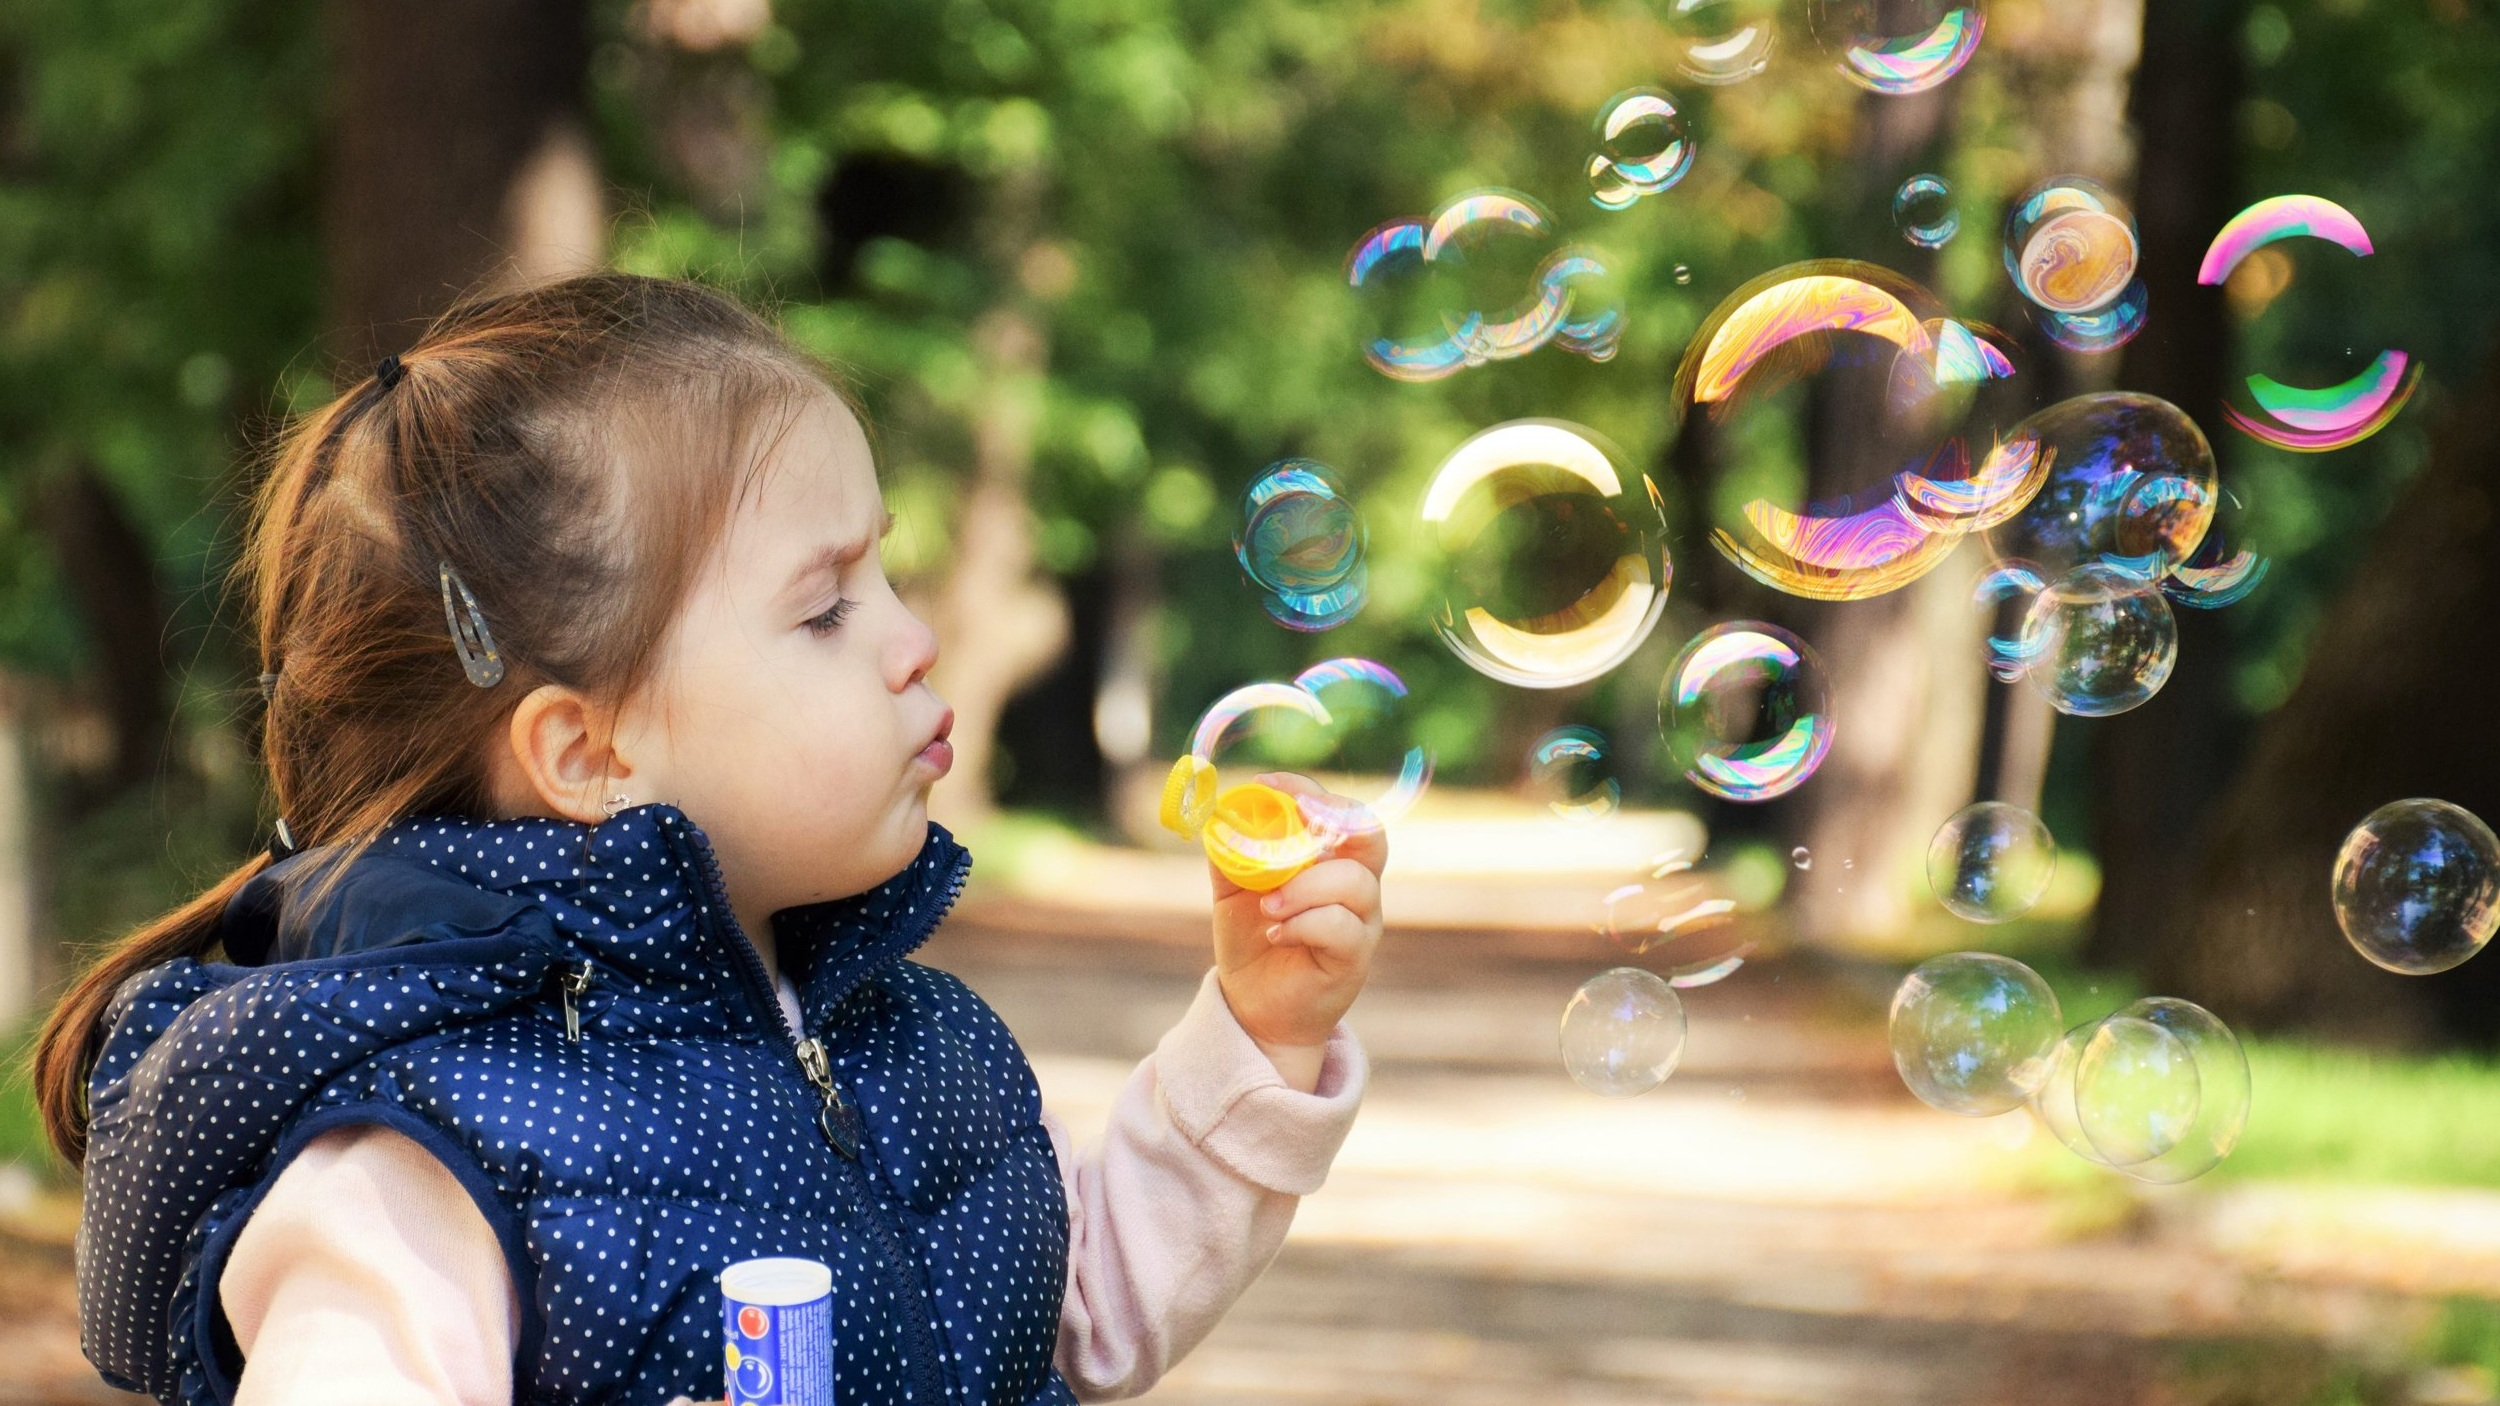 person-people-girl-photography-play-kid-817215-pxhere.com.jpg